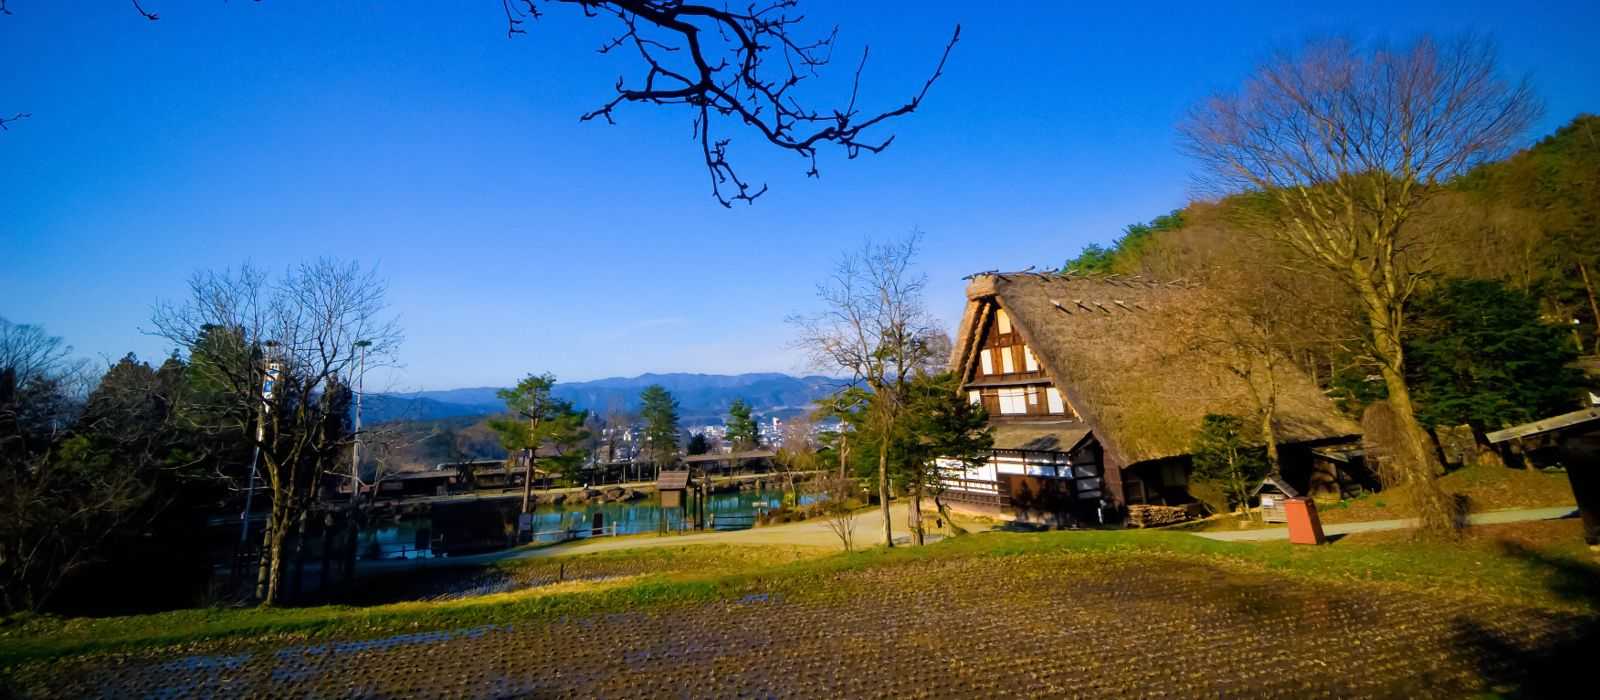 Destination Shirakawa-gō Japan